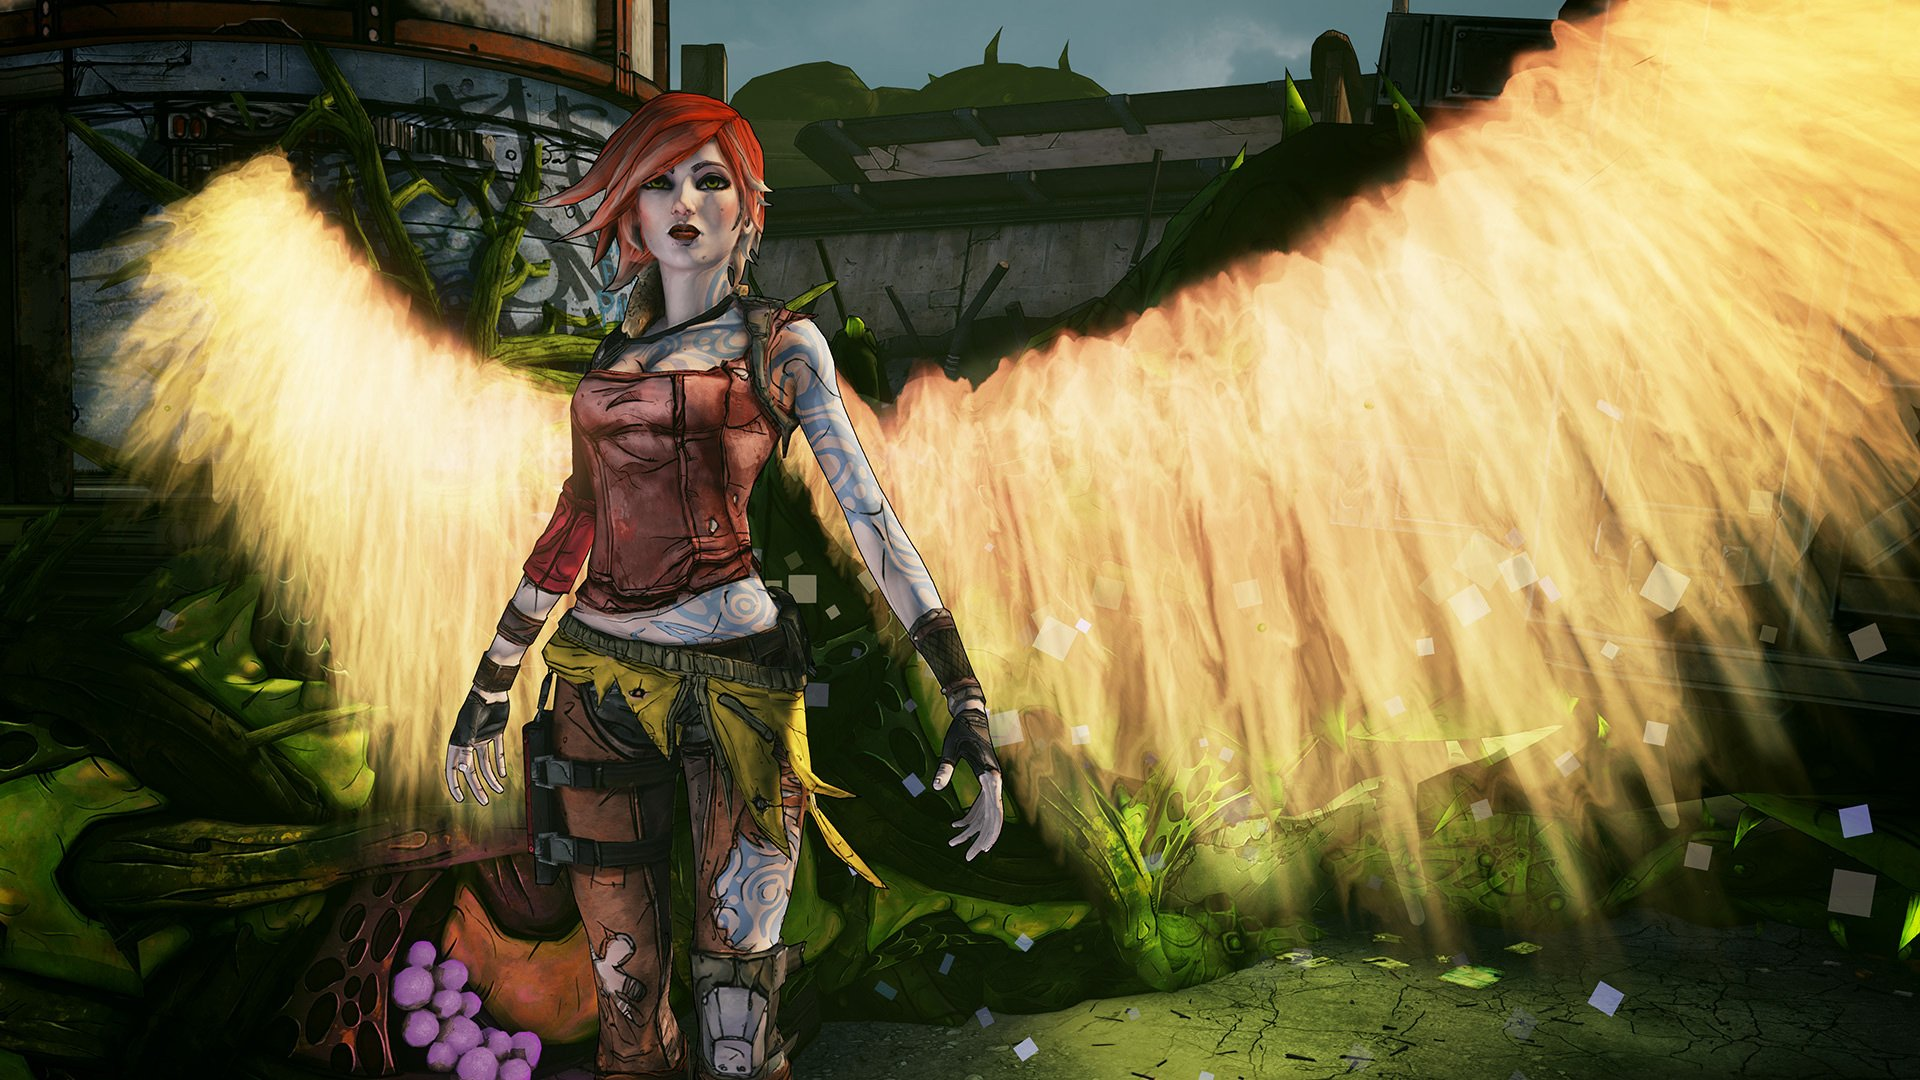 Make sure to grab Borderlands 2's Commander Lilith DLC on Nintendo Switch while you can screenshot